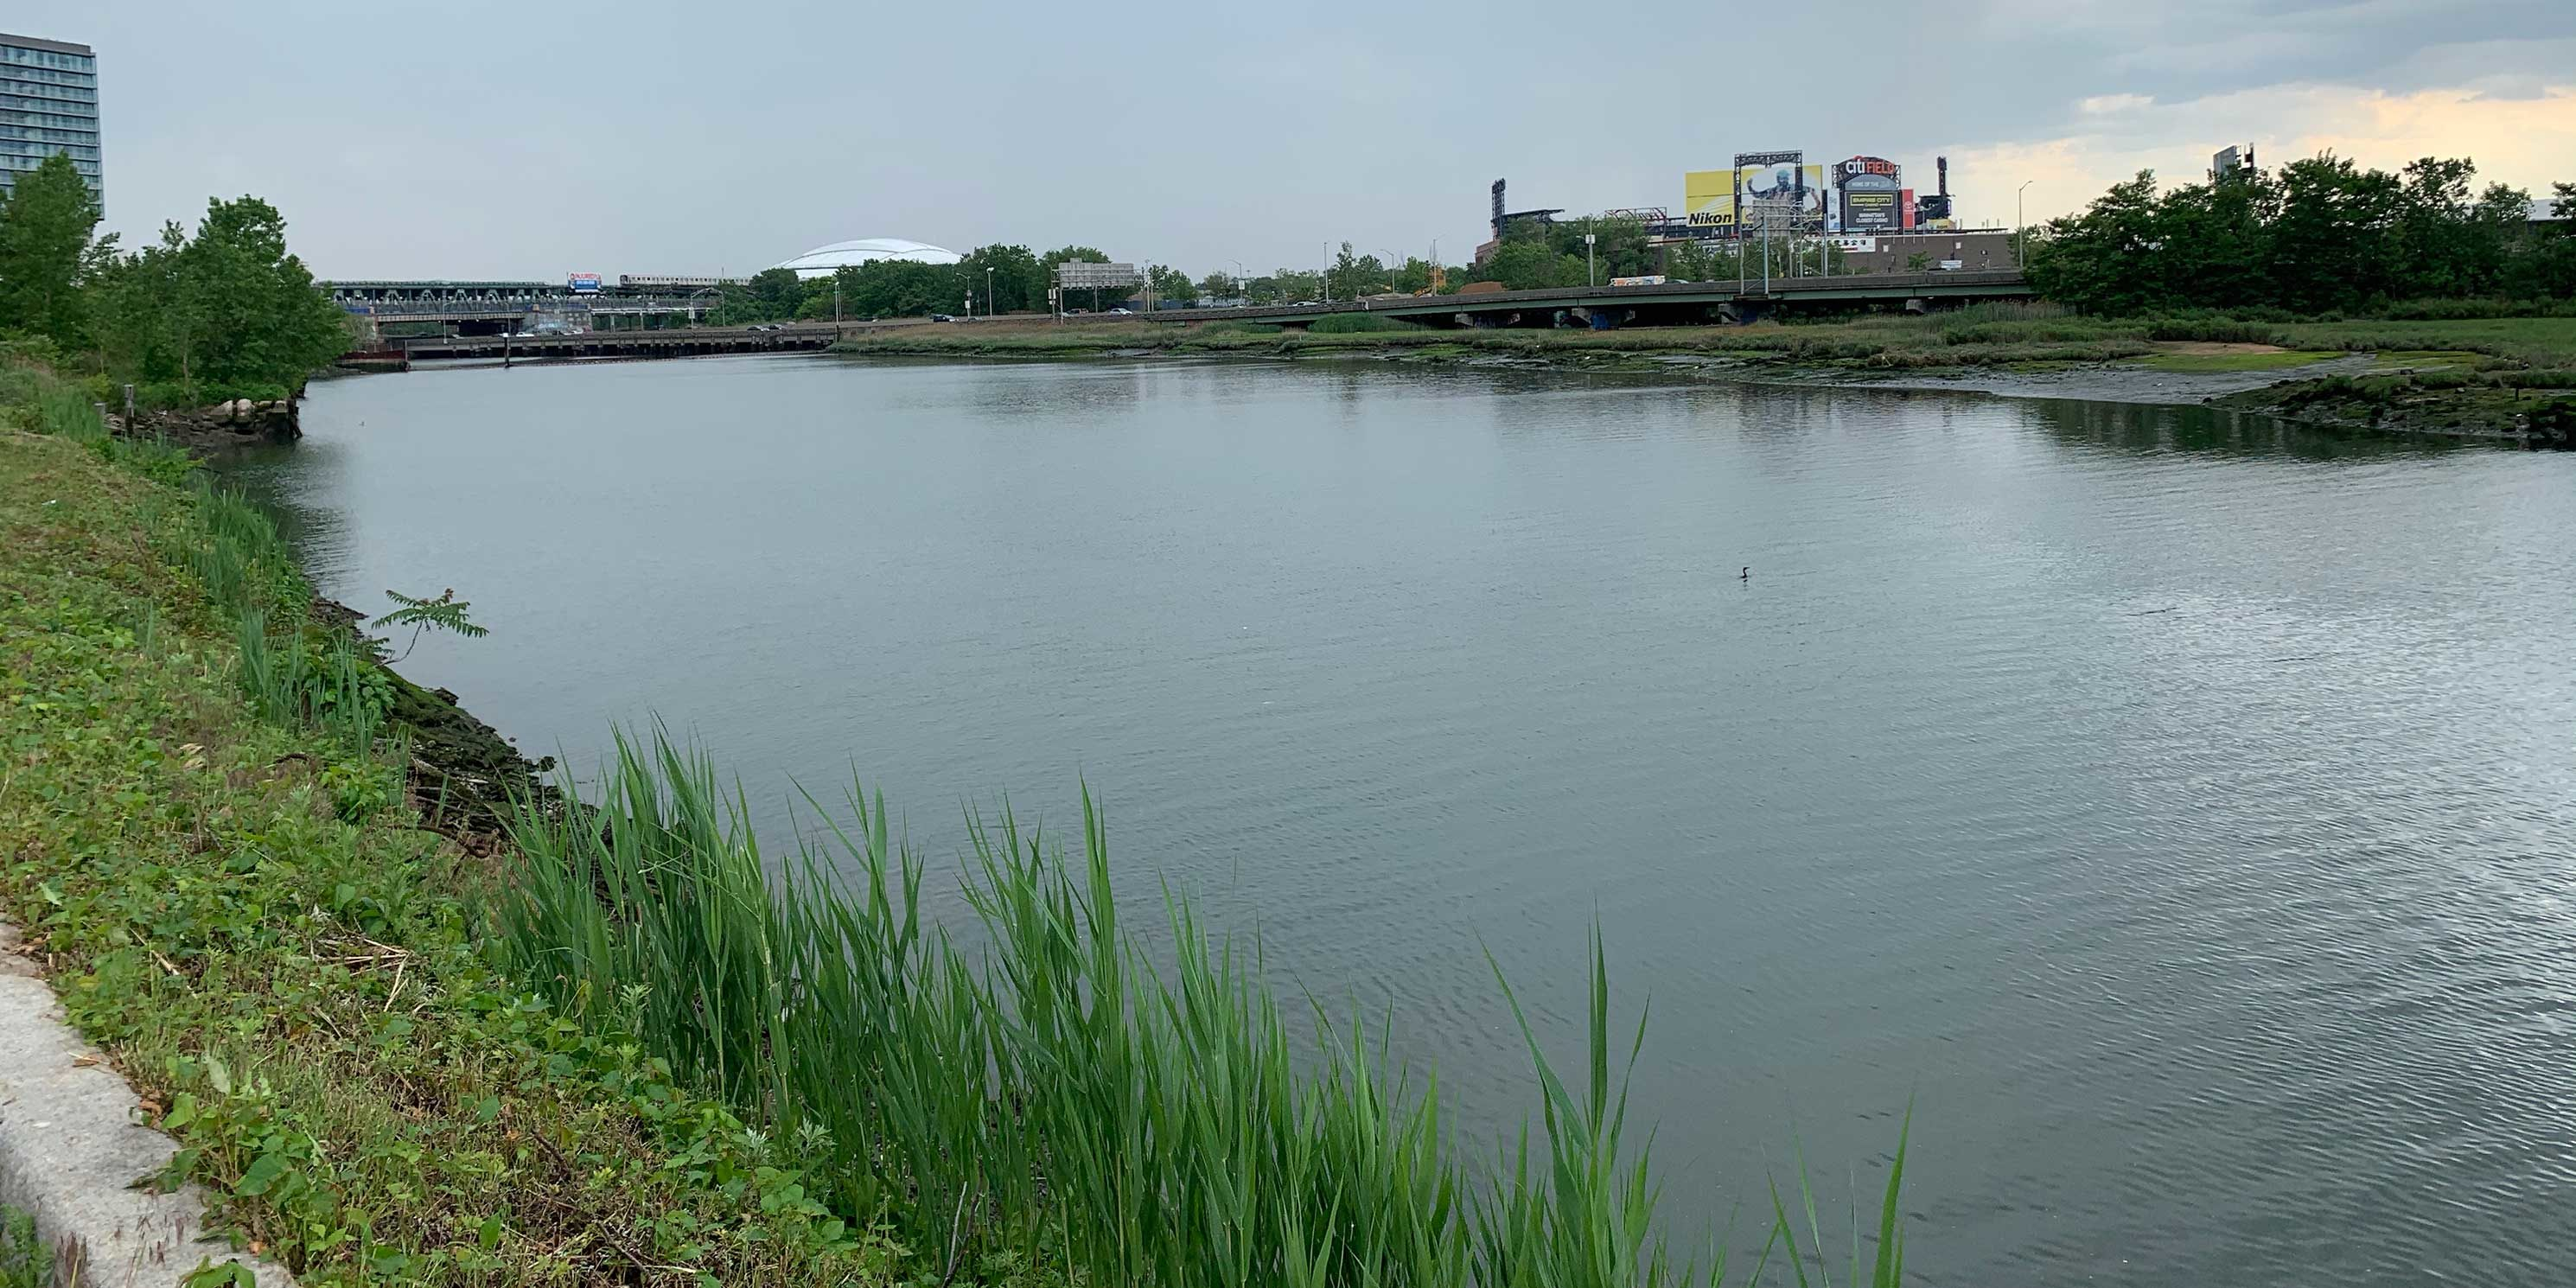 South view of Flushing Creek in Flushing, Queens